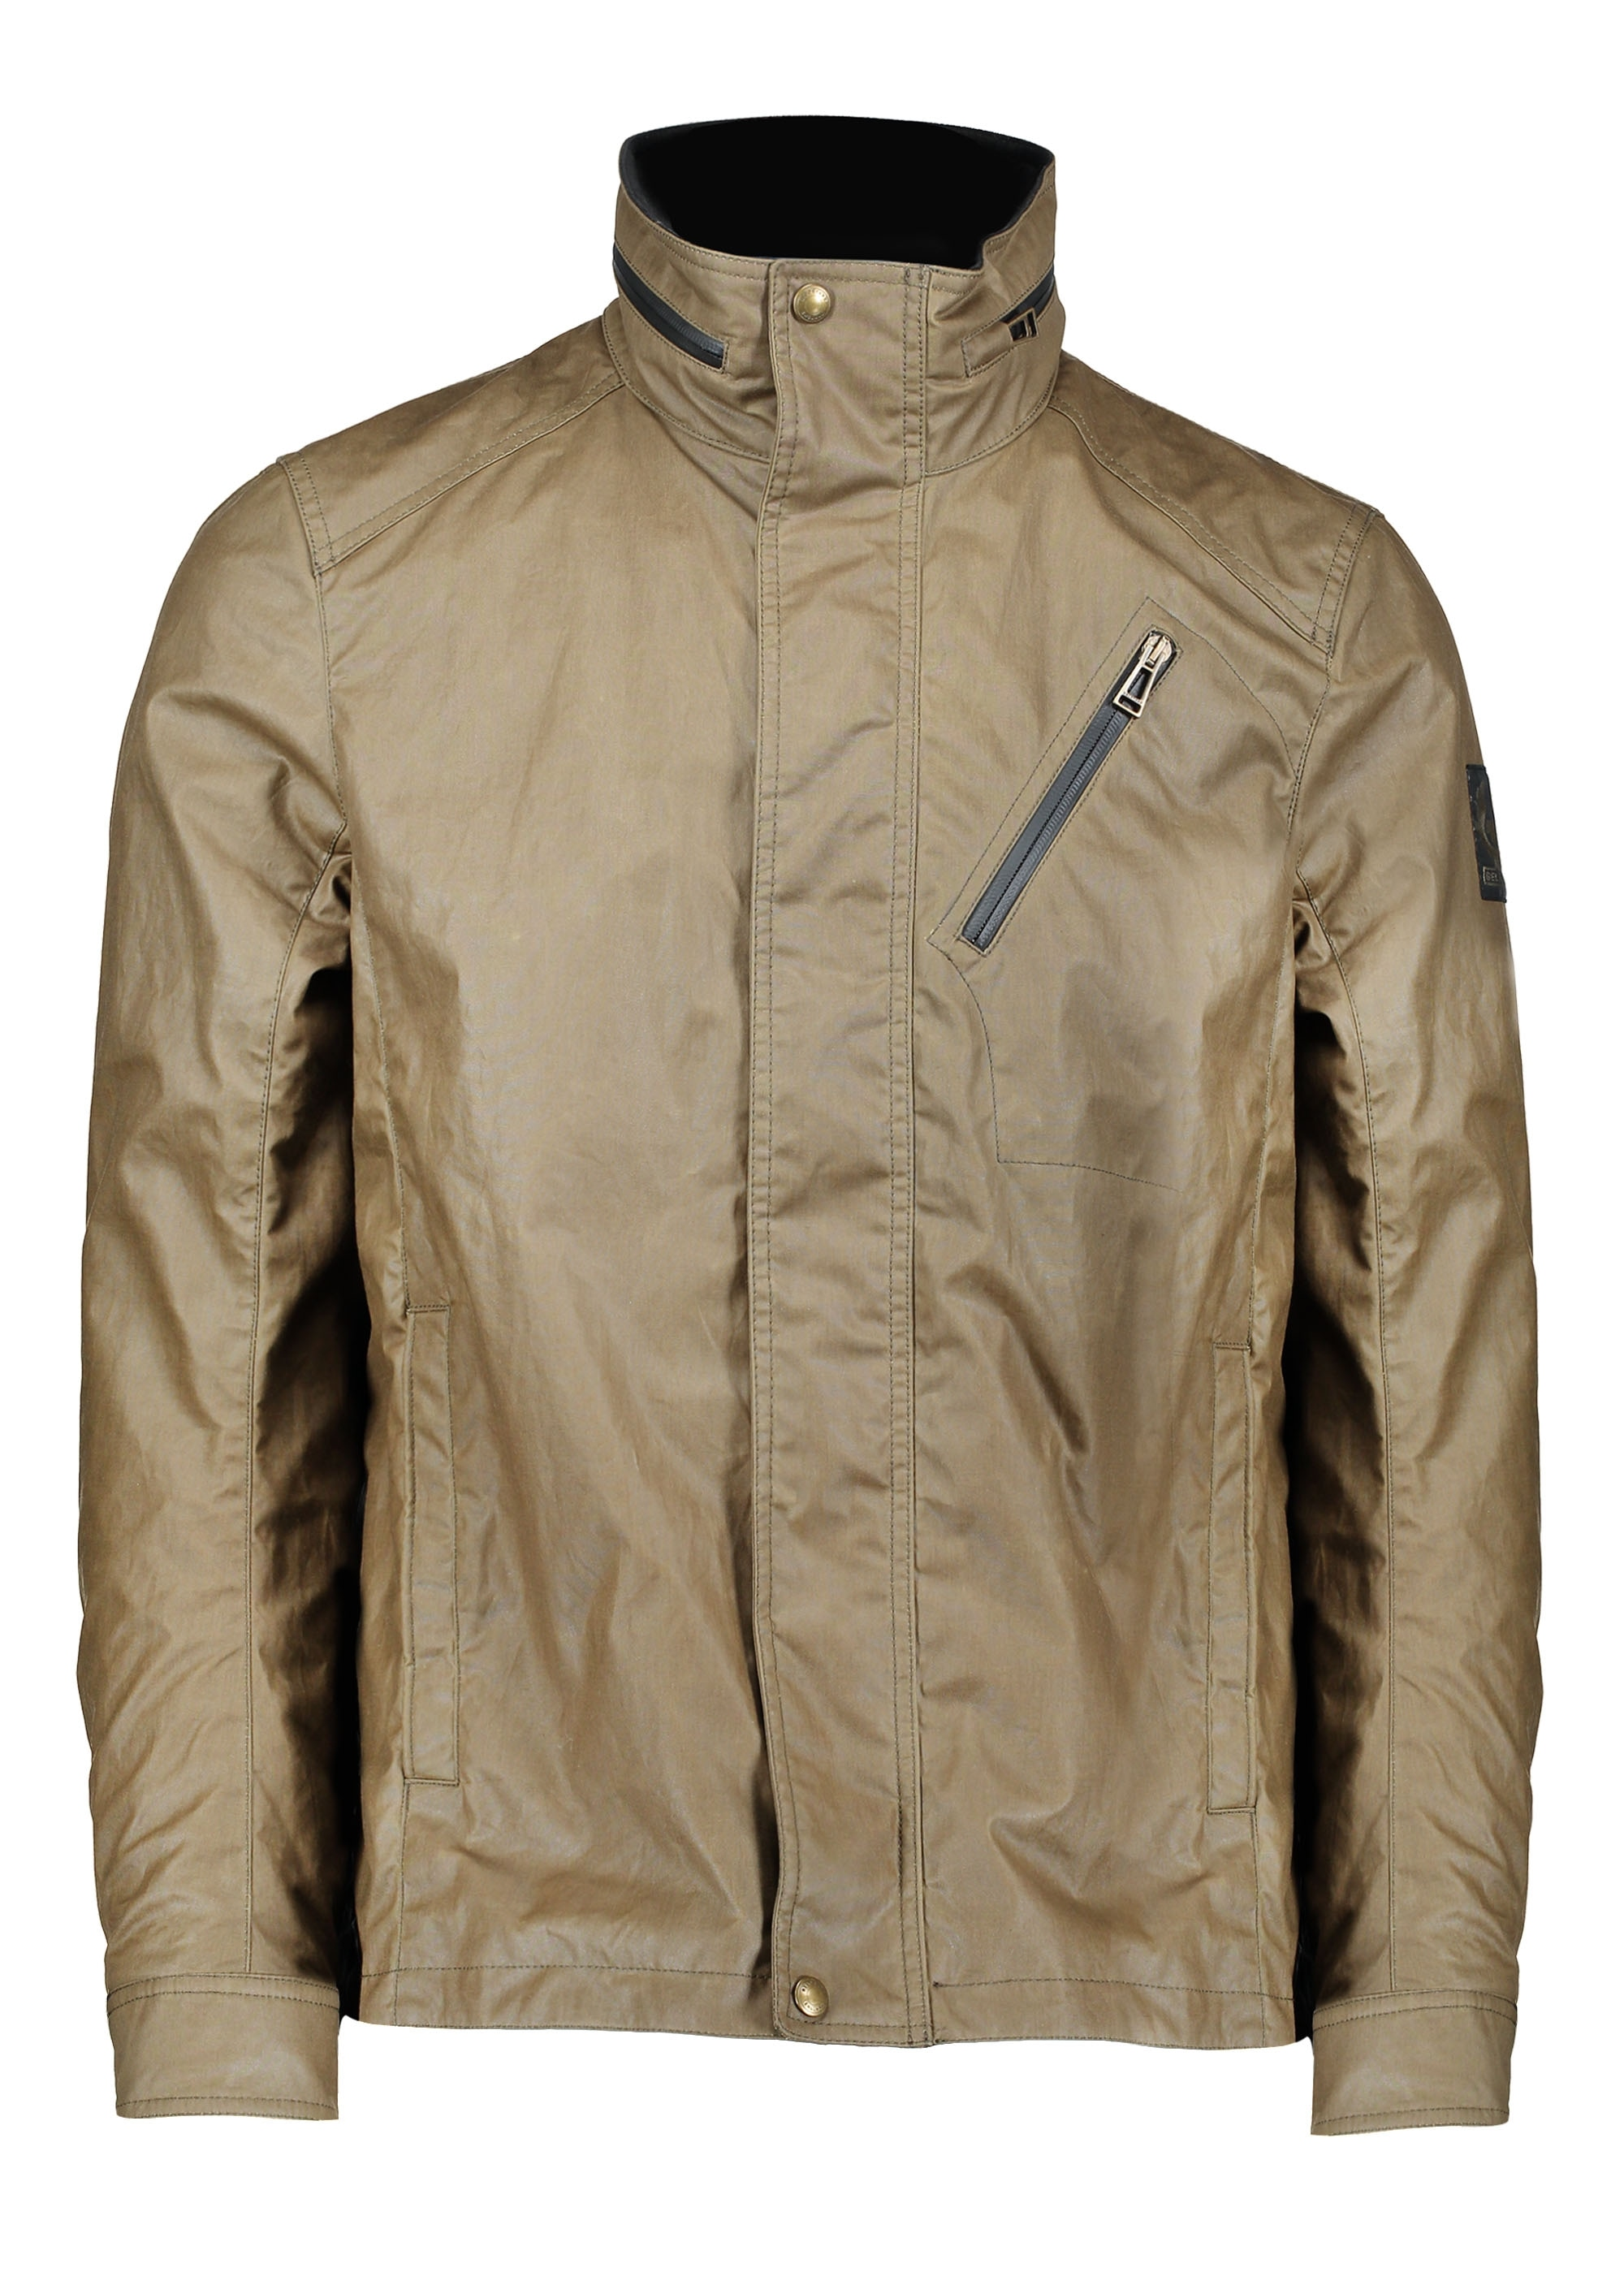 3cf3b0717495 Belstaff Citymaster 2.0 Waxed Jacket - Capers - Triads Mens from ...